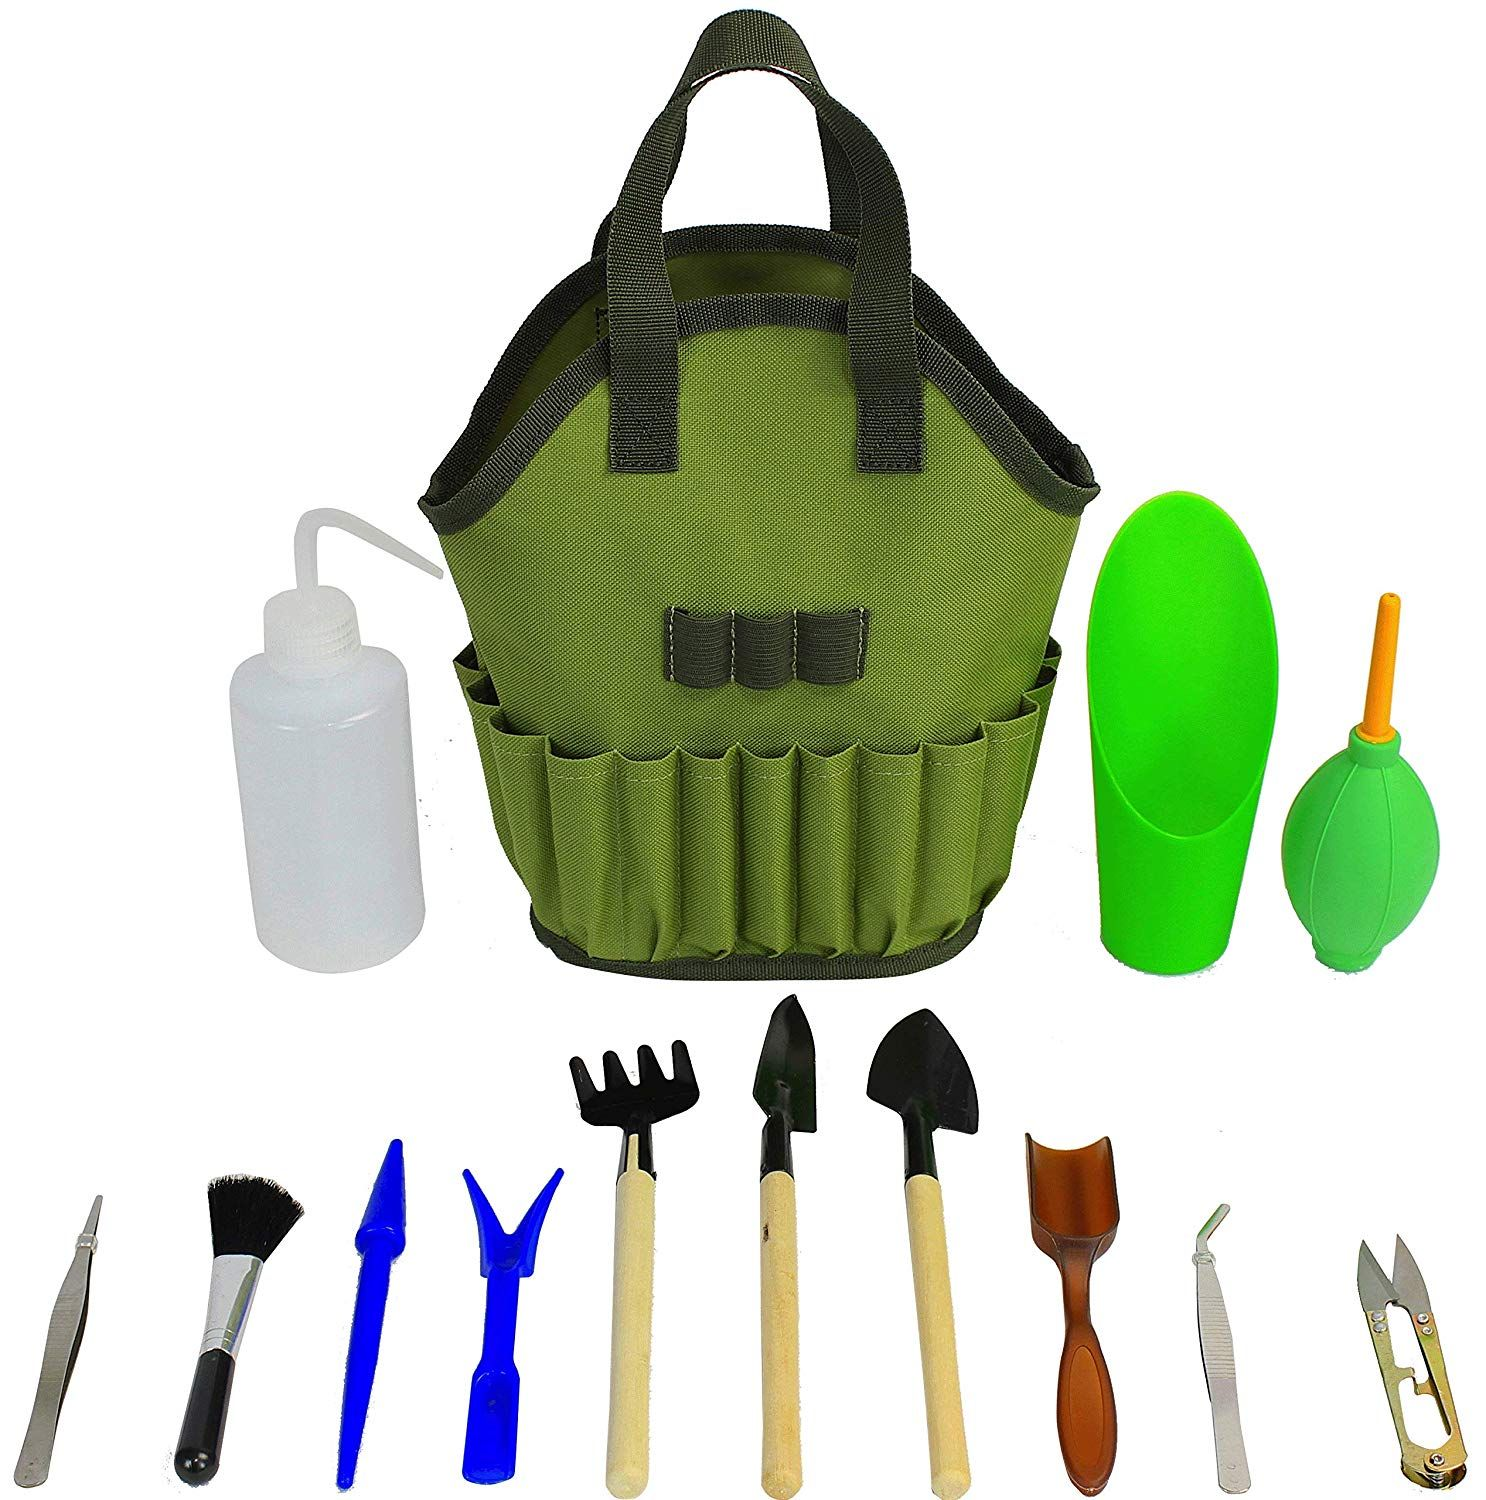 Mini DIY Garden Plant Tools Set Succulent Planting Transplanting Tools Kit